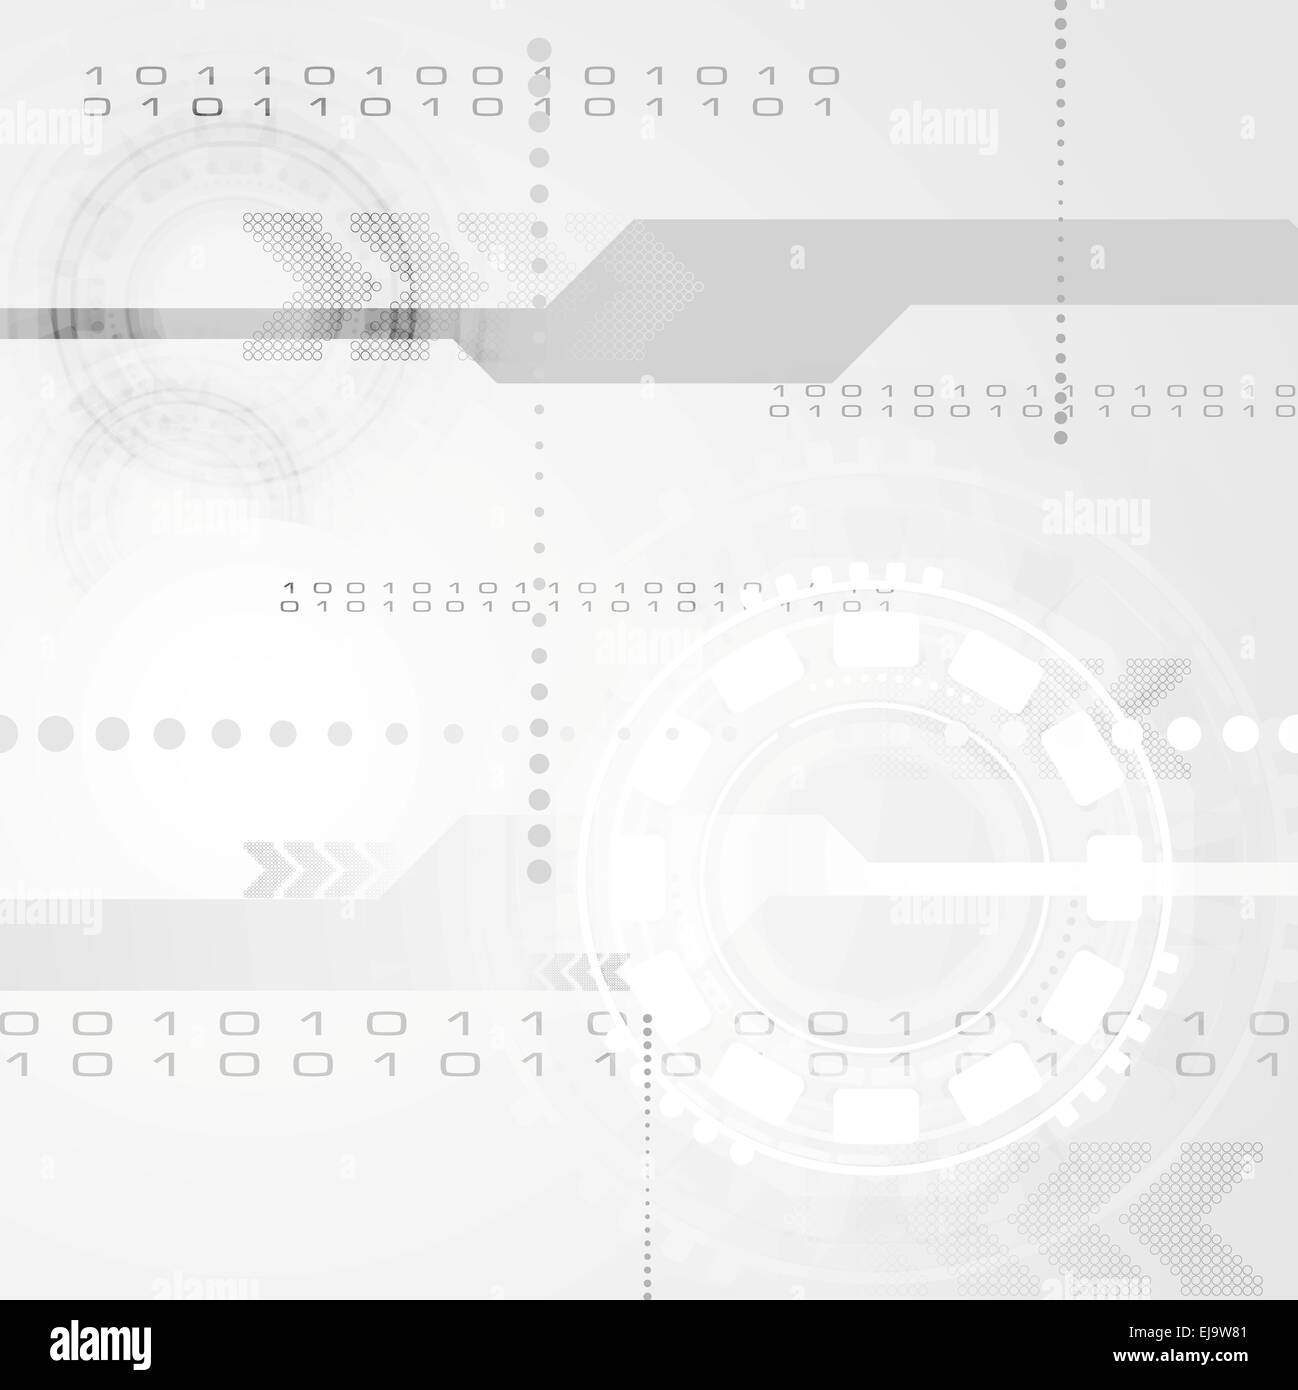 Mechanical Engineering Abstract Stock Photos Steampunk Schematics Grey Tech Background Image